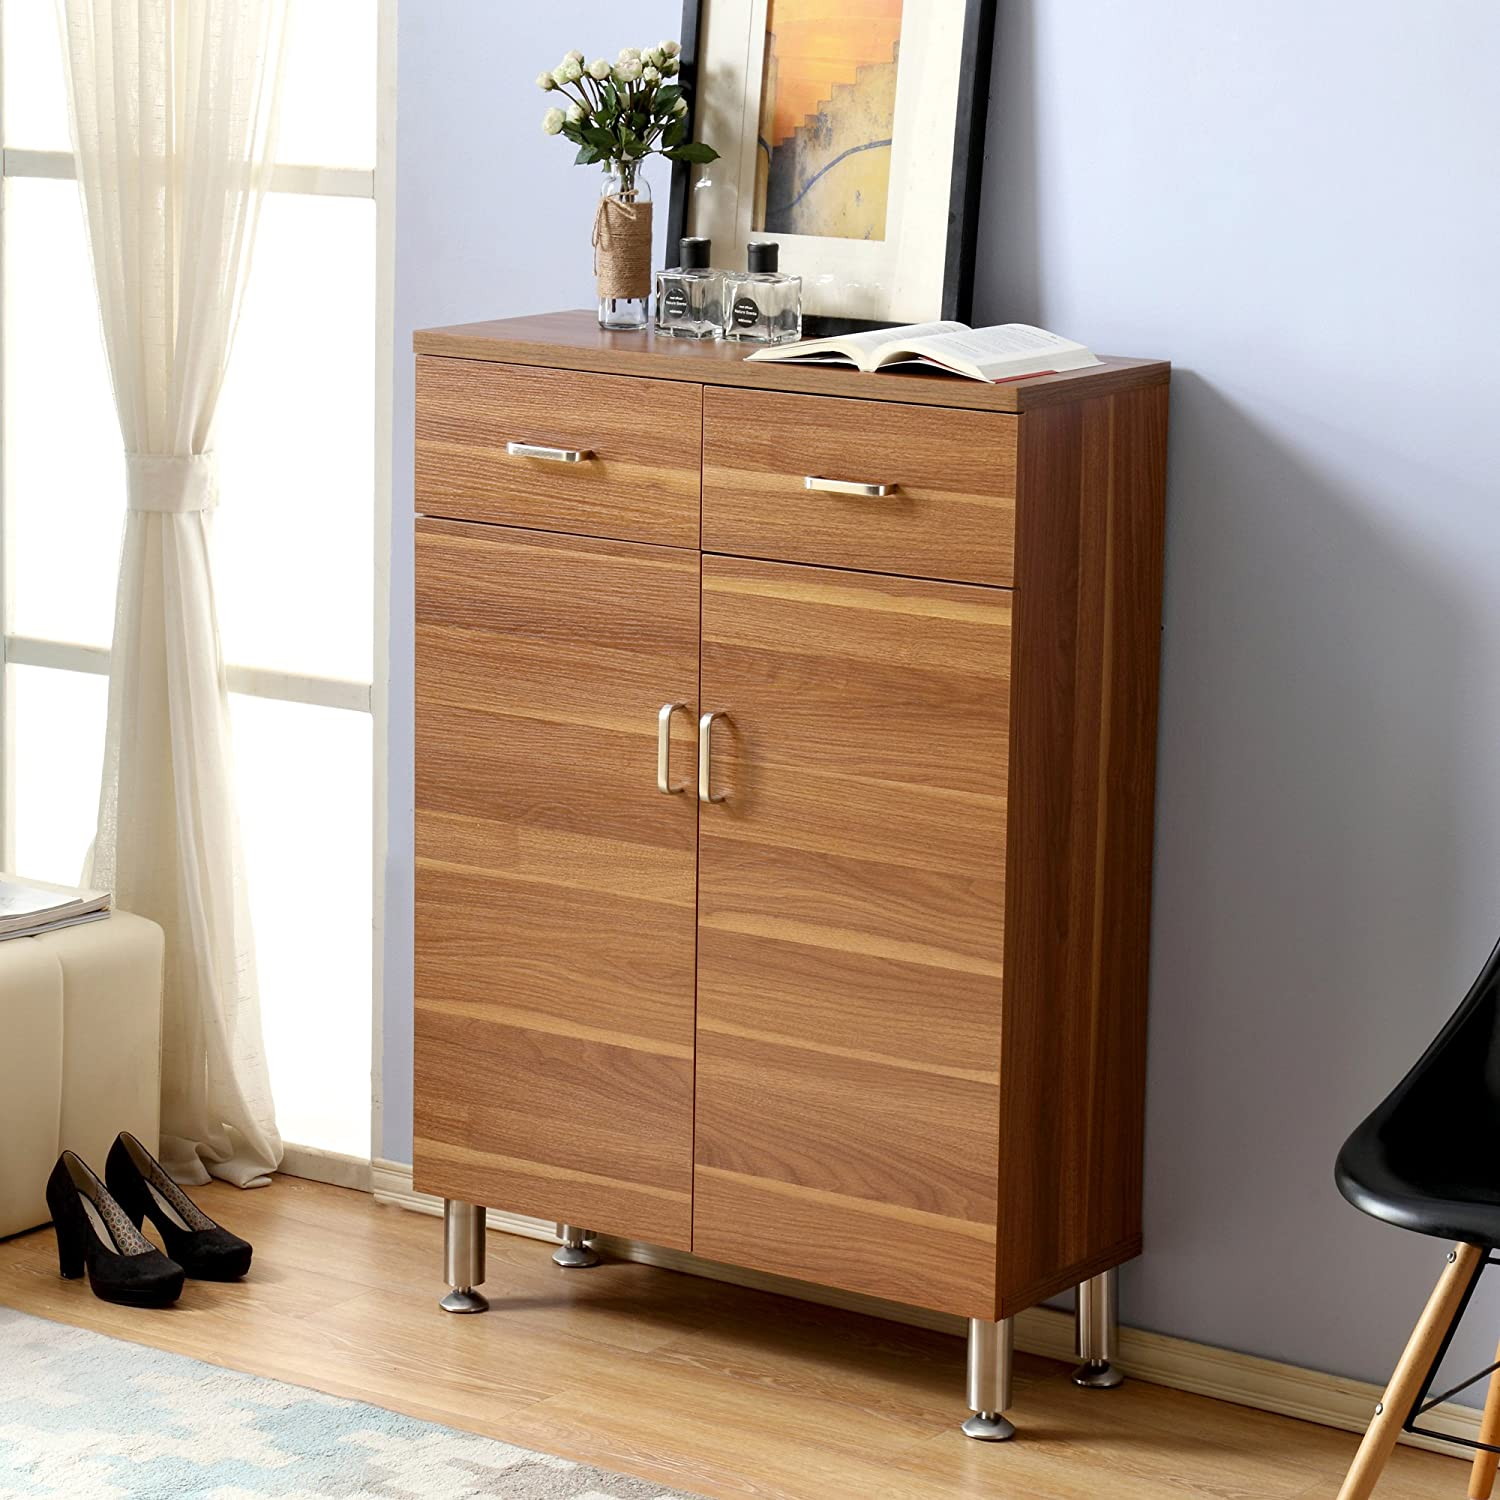 Light Brown Mixcept 32 Modern Shoes Cabinet with Doors Wooden Entryway Shoe Storage Cabinet with 4 Shelves /& 2 Drawers